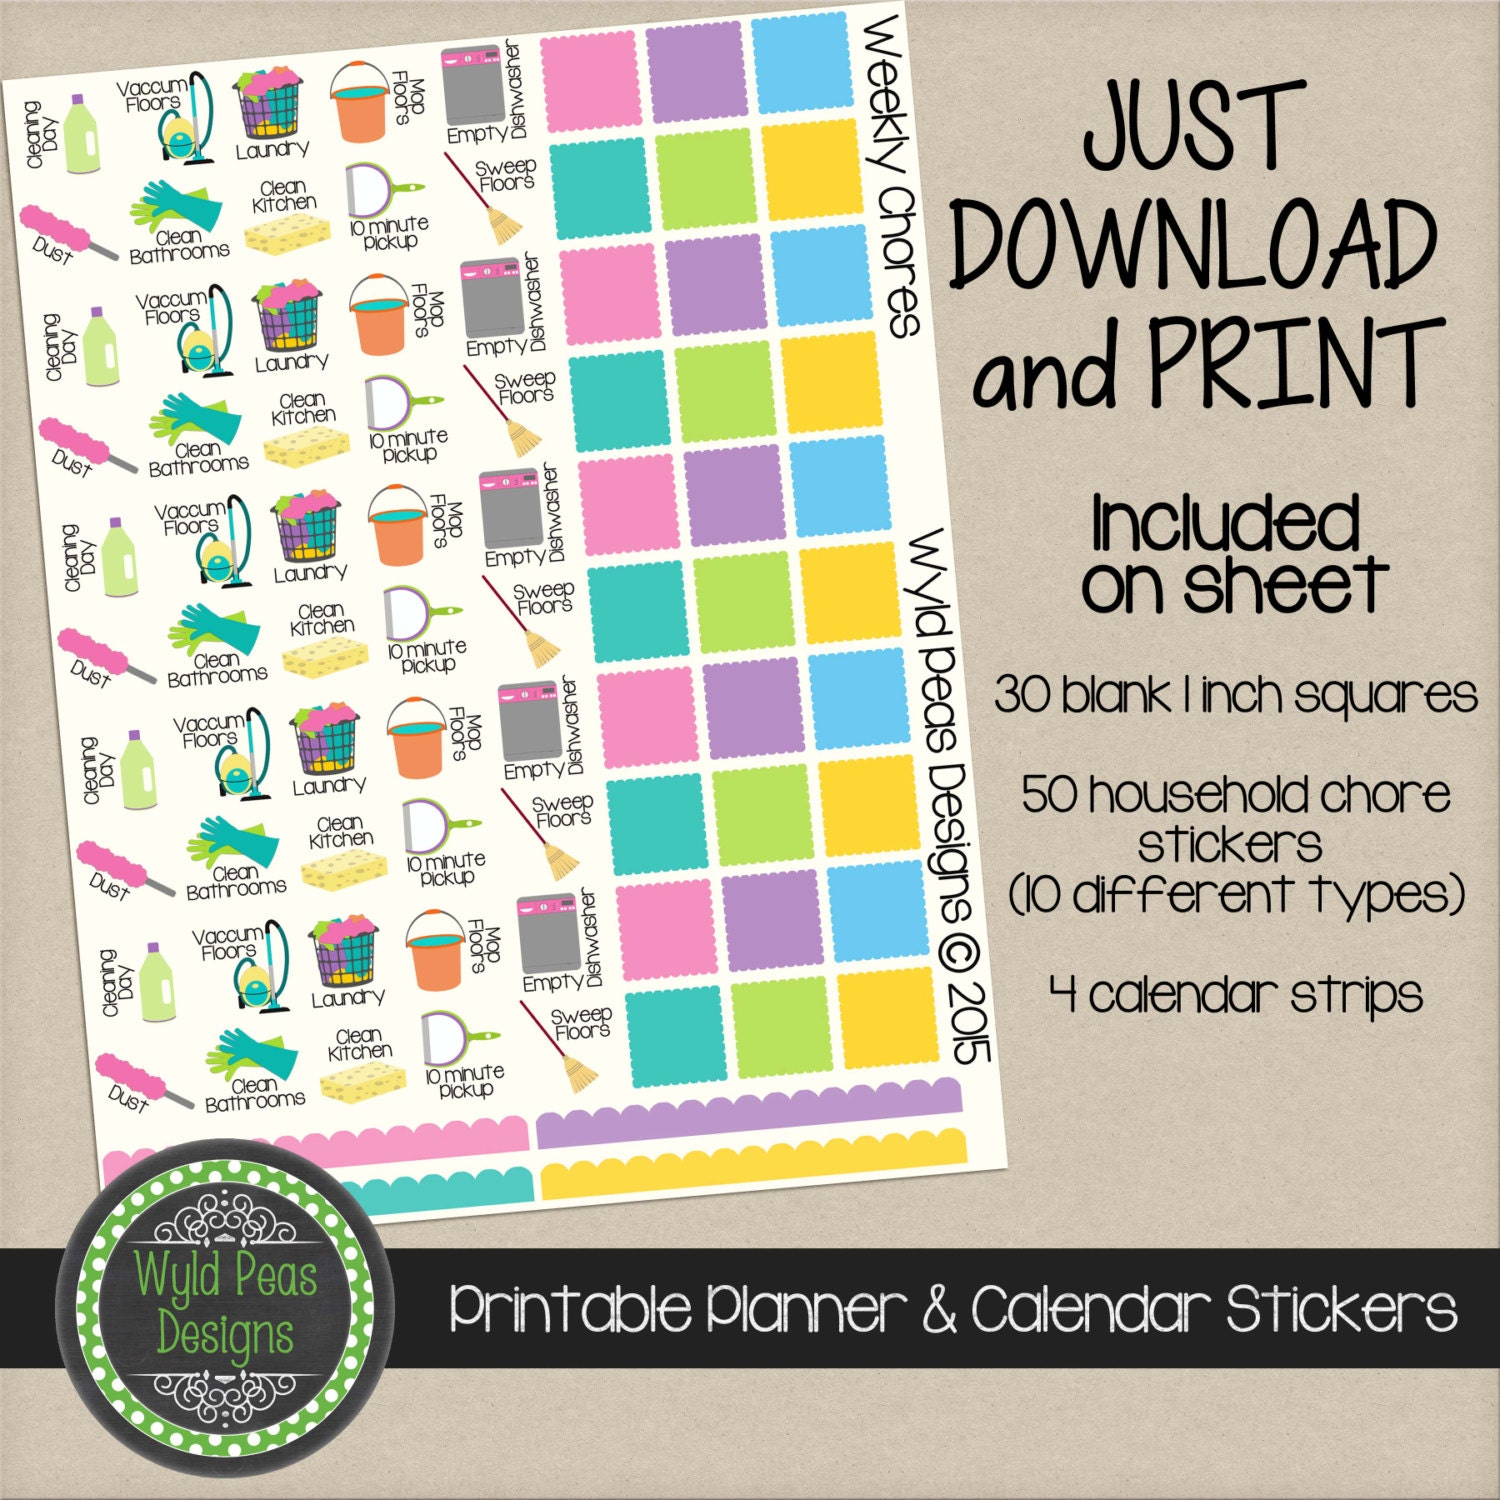 printable chore household planner stickers by wyldpeasdesigns